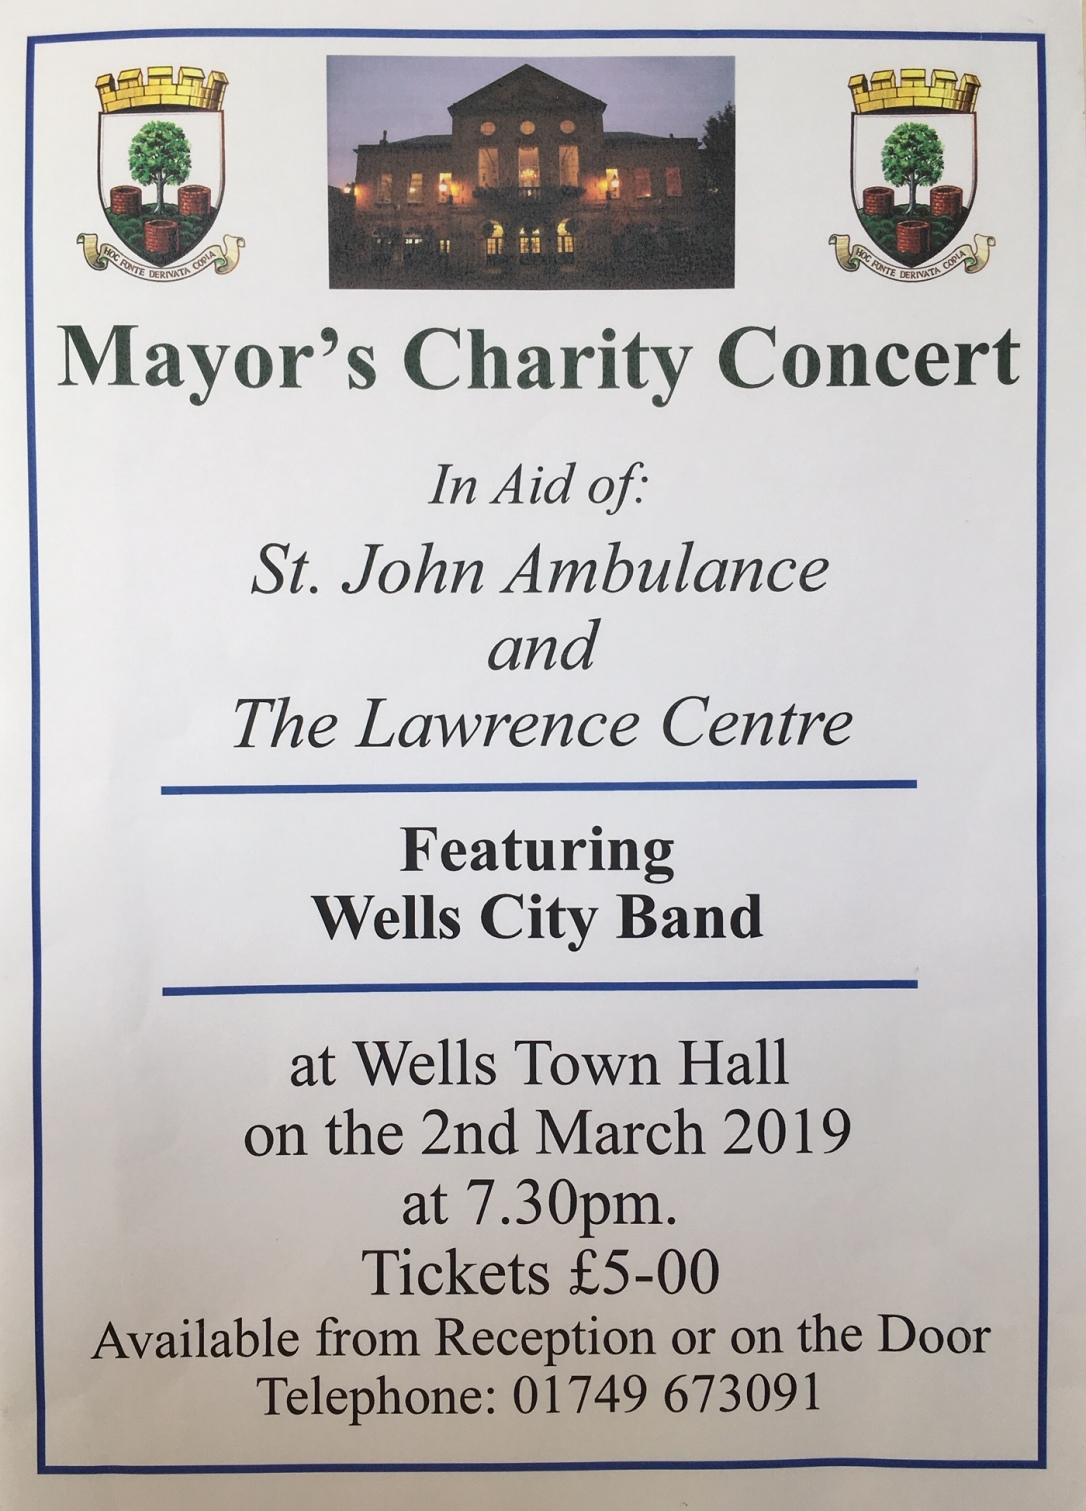 mayors concert poster 2019